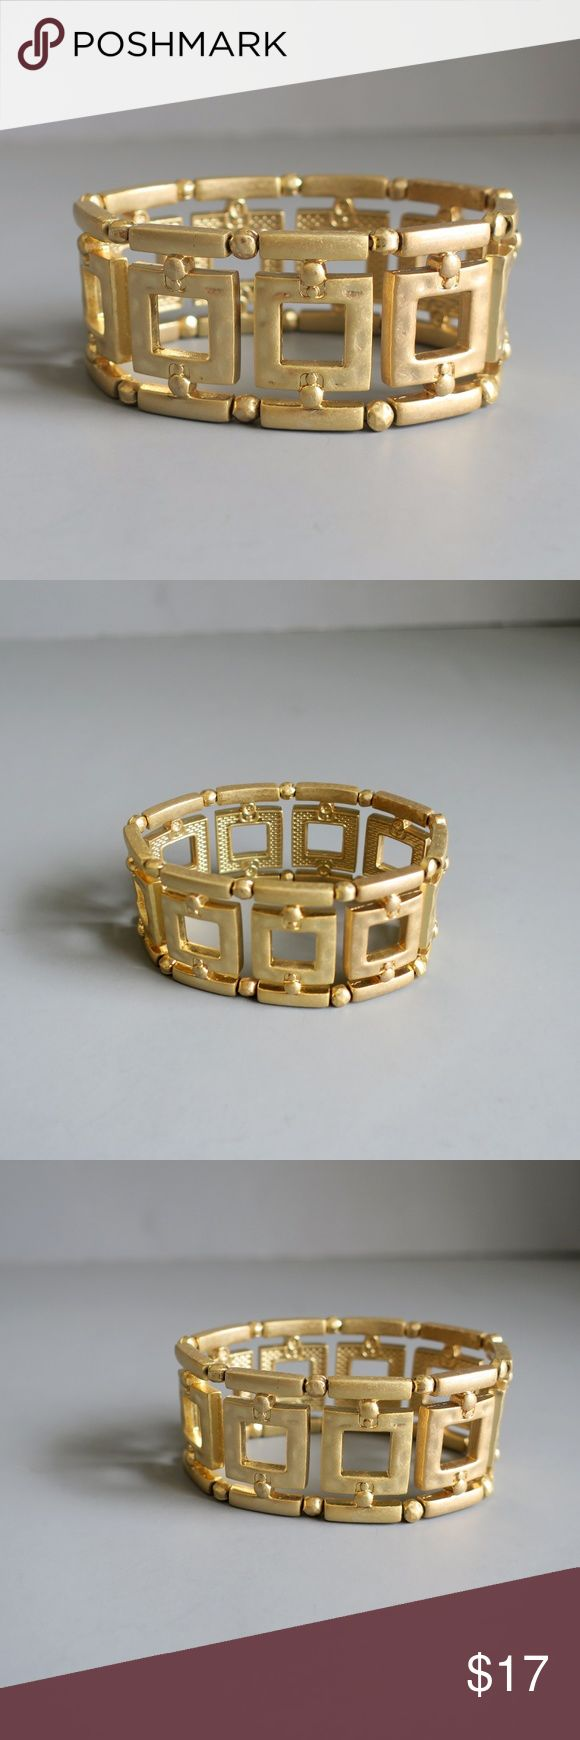 "Lia Sophia Crete Bracelet Lia Sophia's elegant ""Crete"" bracelet. Matte gold classic ""Greek"" style stretch bracelet measuring approximately 1 1/4 inches in height making it hard to miss. Excellent condition. Lia Sophia Jewelry Bracelets"